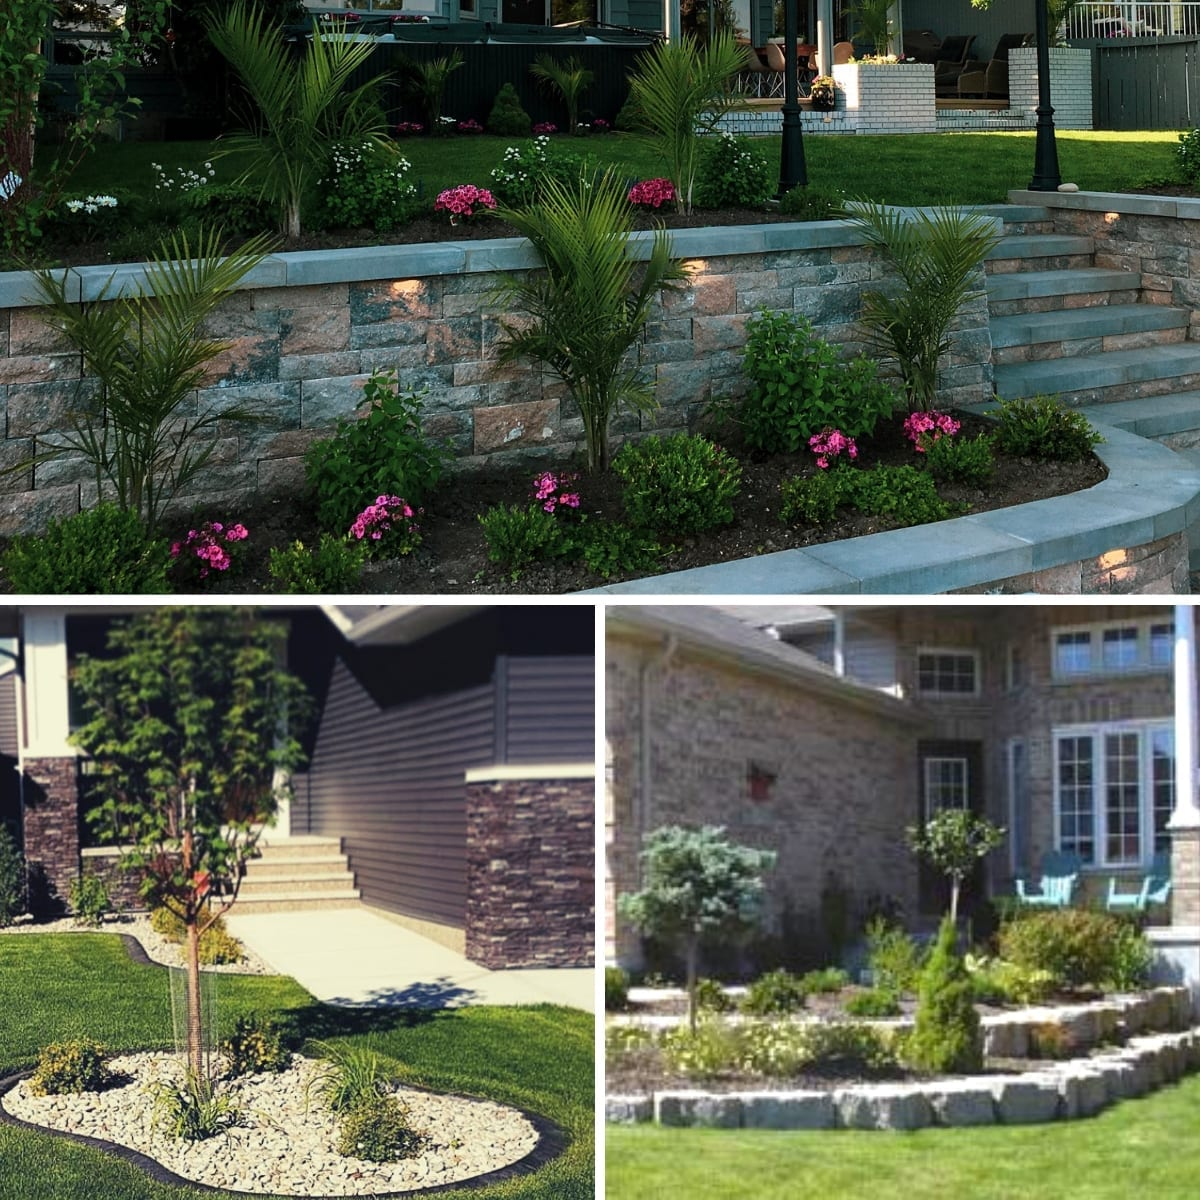 New Look Landscapes - Services: Garden & Trees